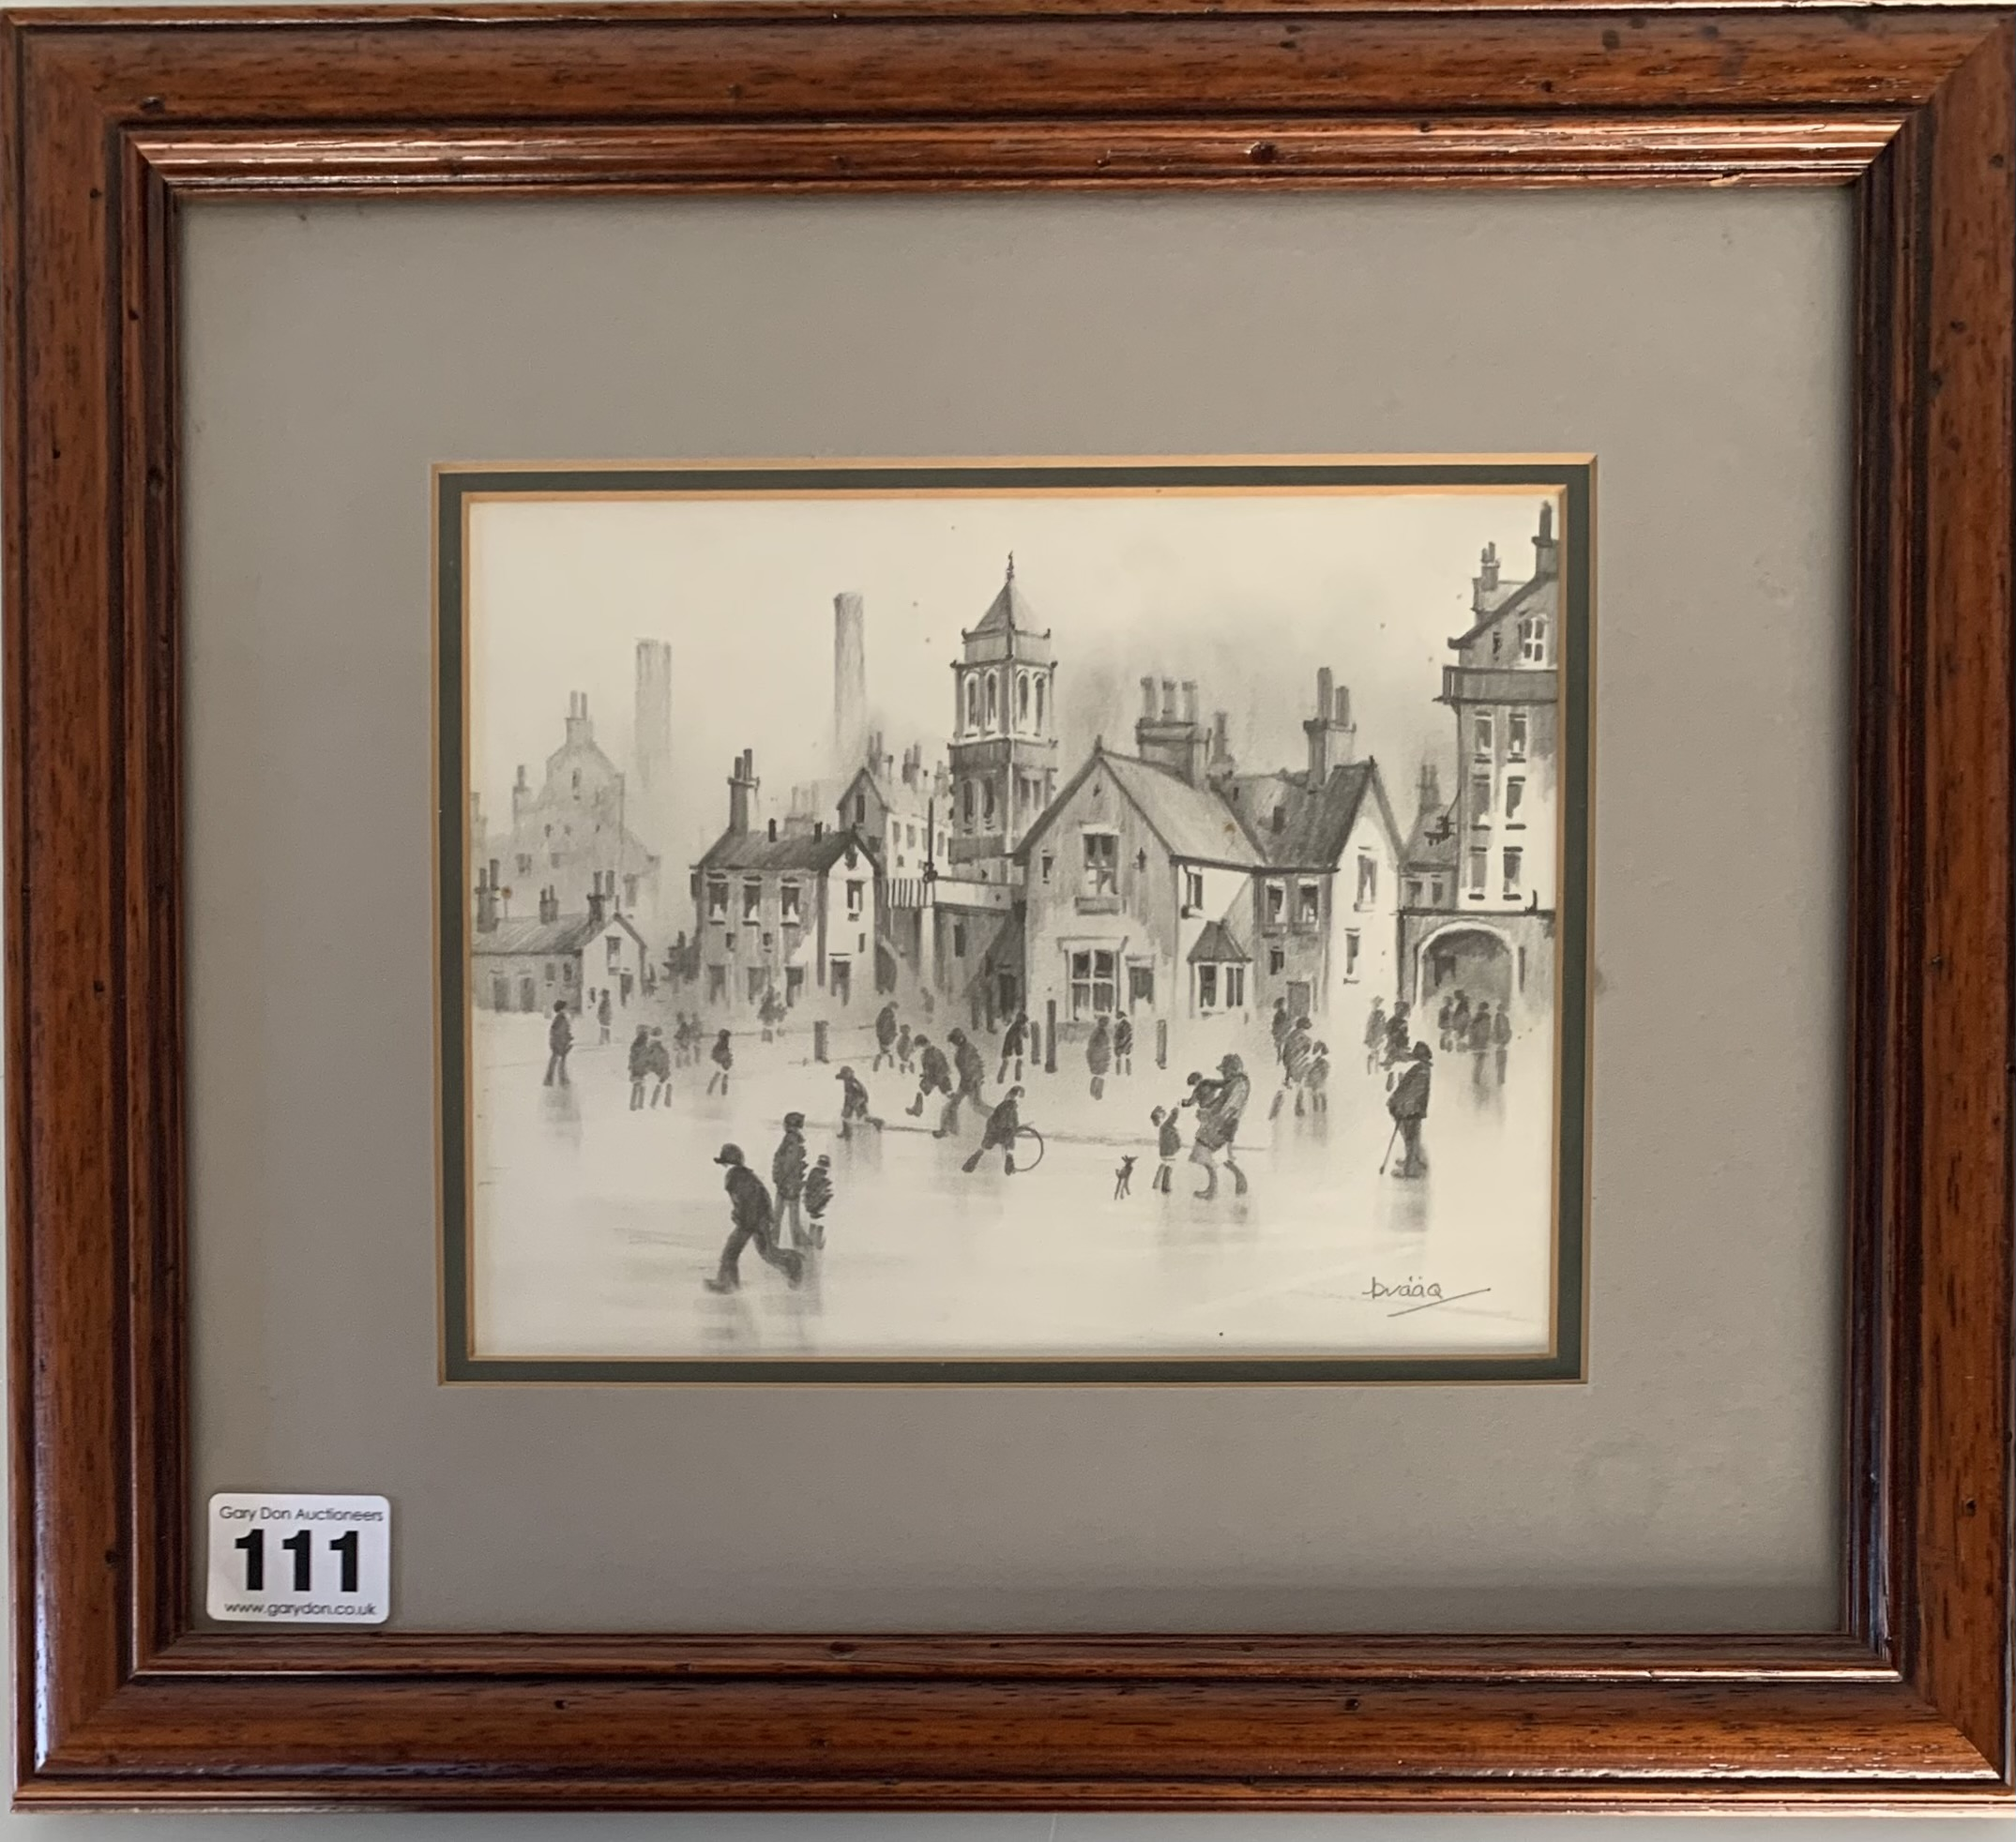 Brian Shields (Braaq) pencil sketch of town scene with figures in foreground. Signed 'braaq'.